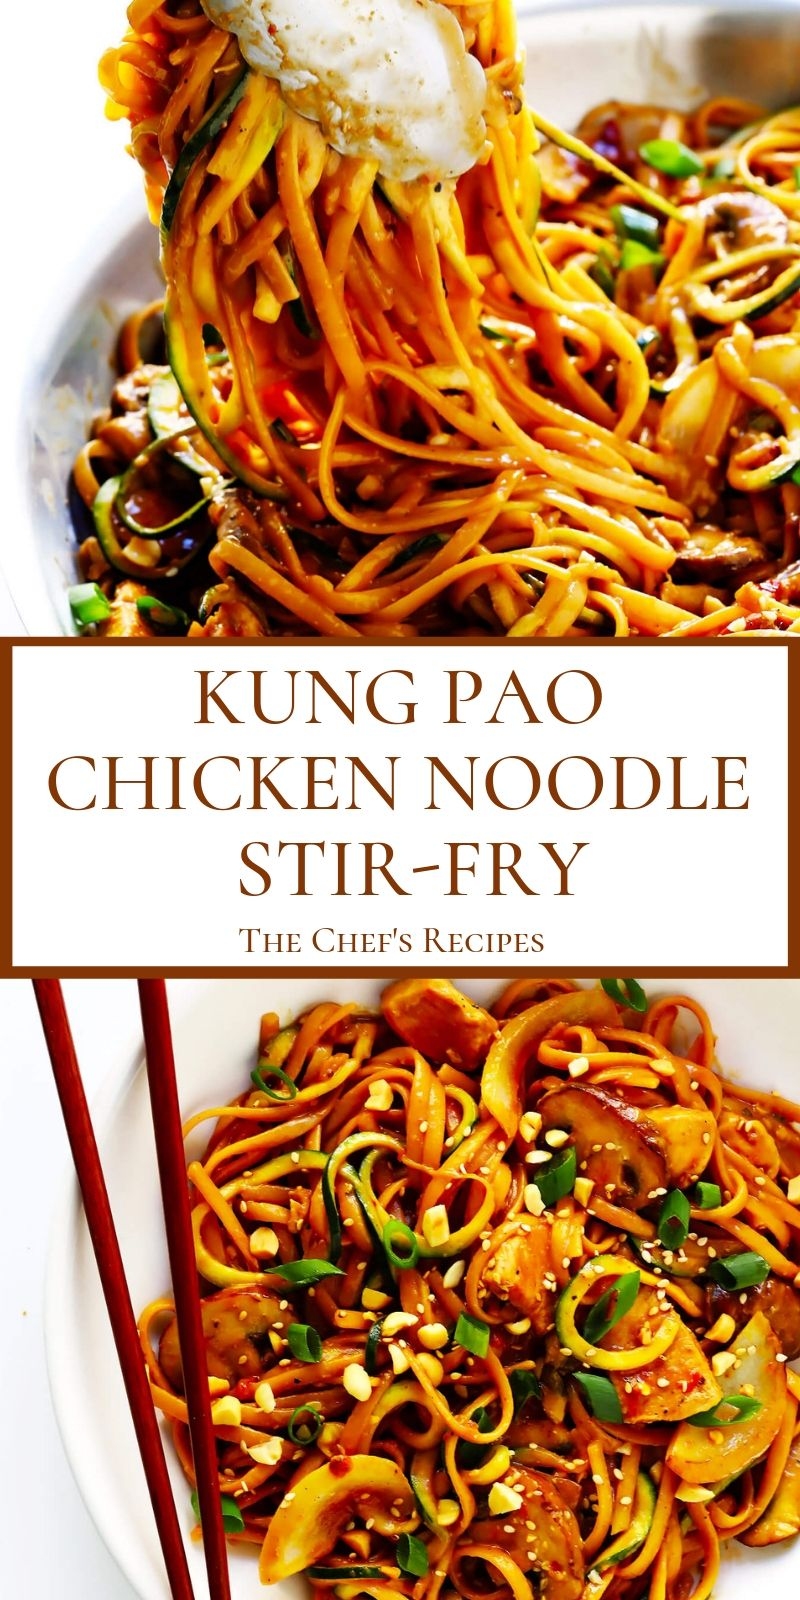 Photo of KUNG PAO CHICKEN NOODLE STIR-FRY